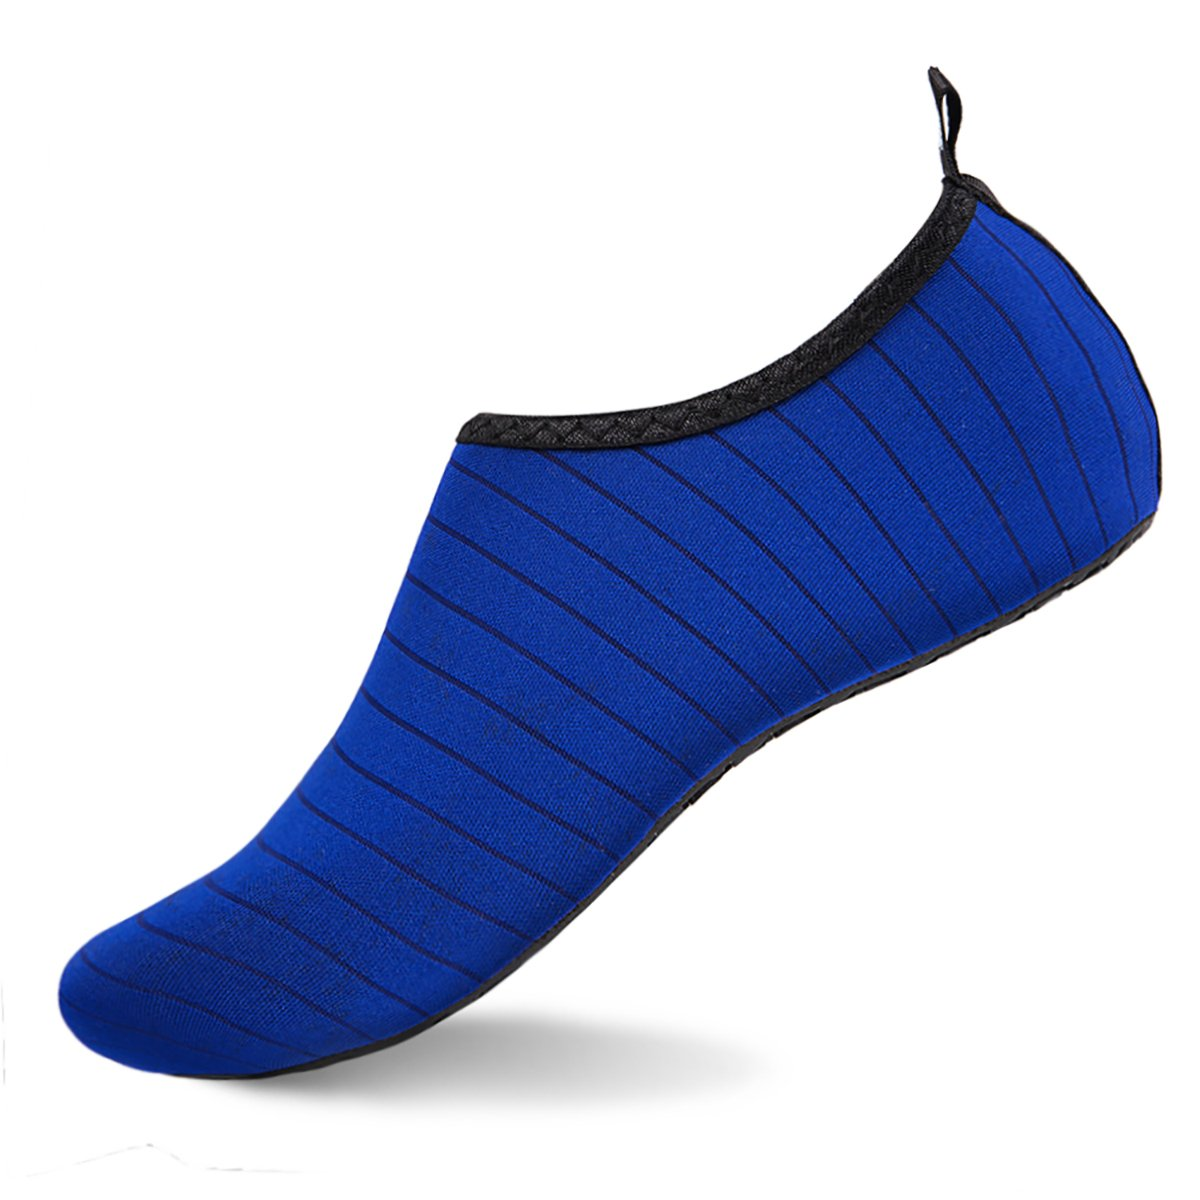 Womens and Mens Water Shoes Barefoot Quick-Dry Aqua Socks for Beach Swim Surf Yoga Exercise (TW.Blue, L)